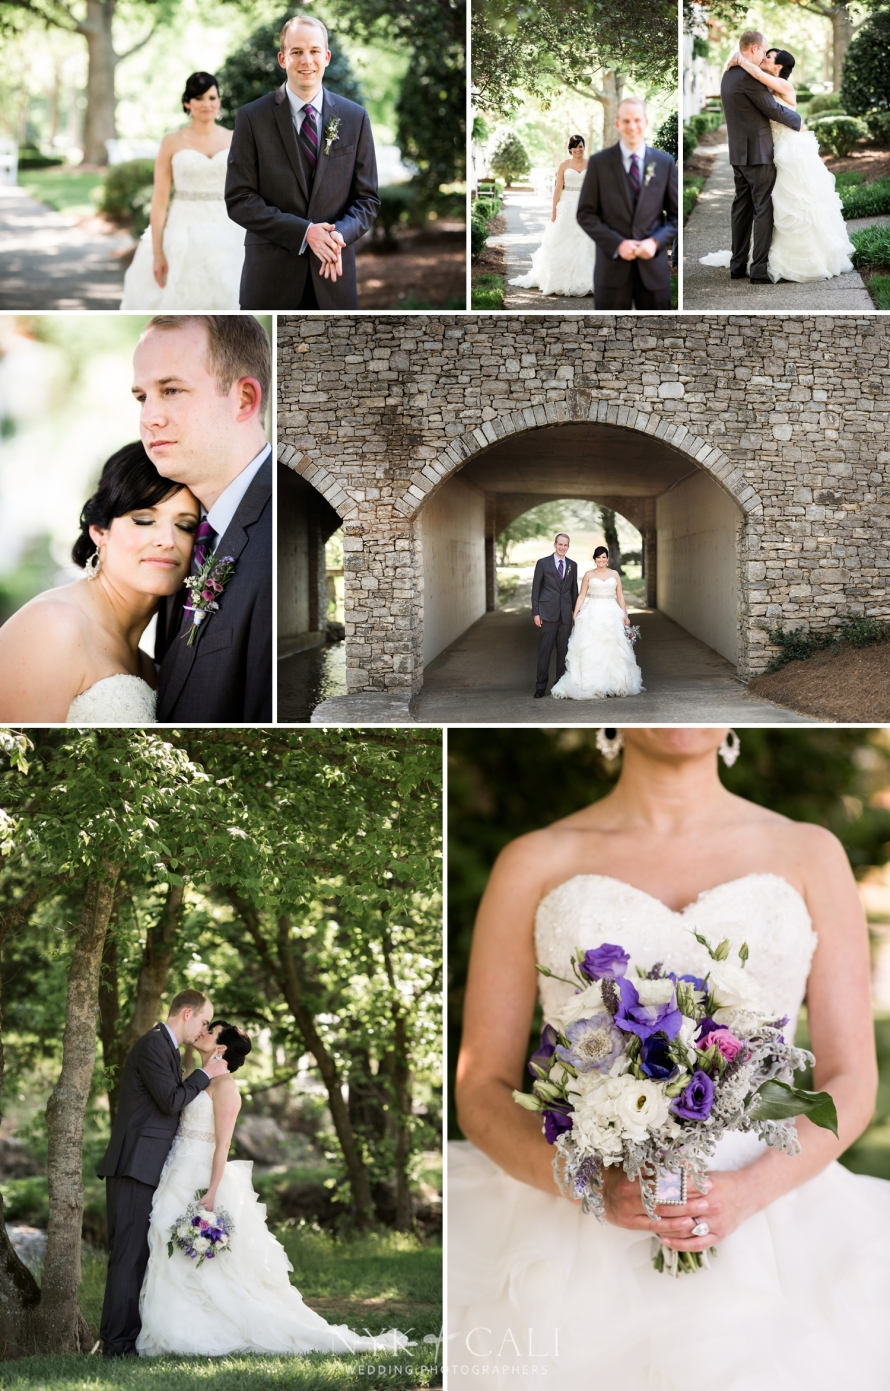 Governors-Club-Brentwood-TN-Wedding-Photography-3